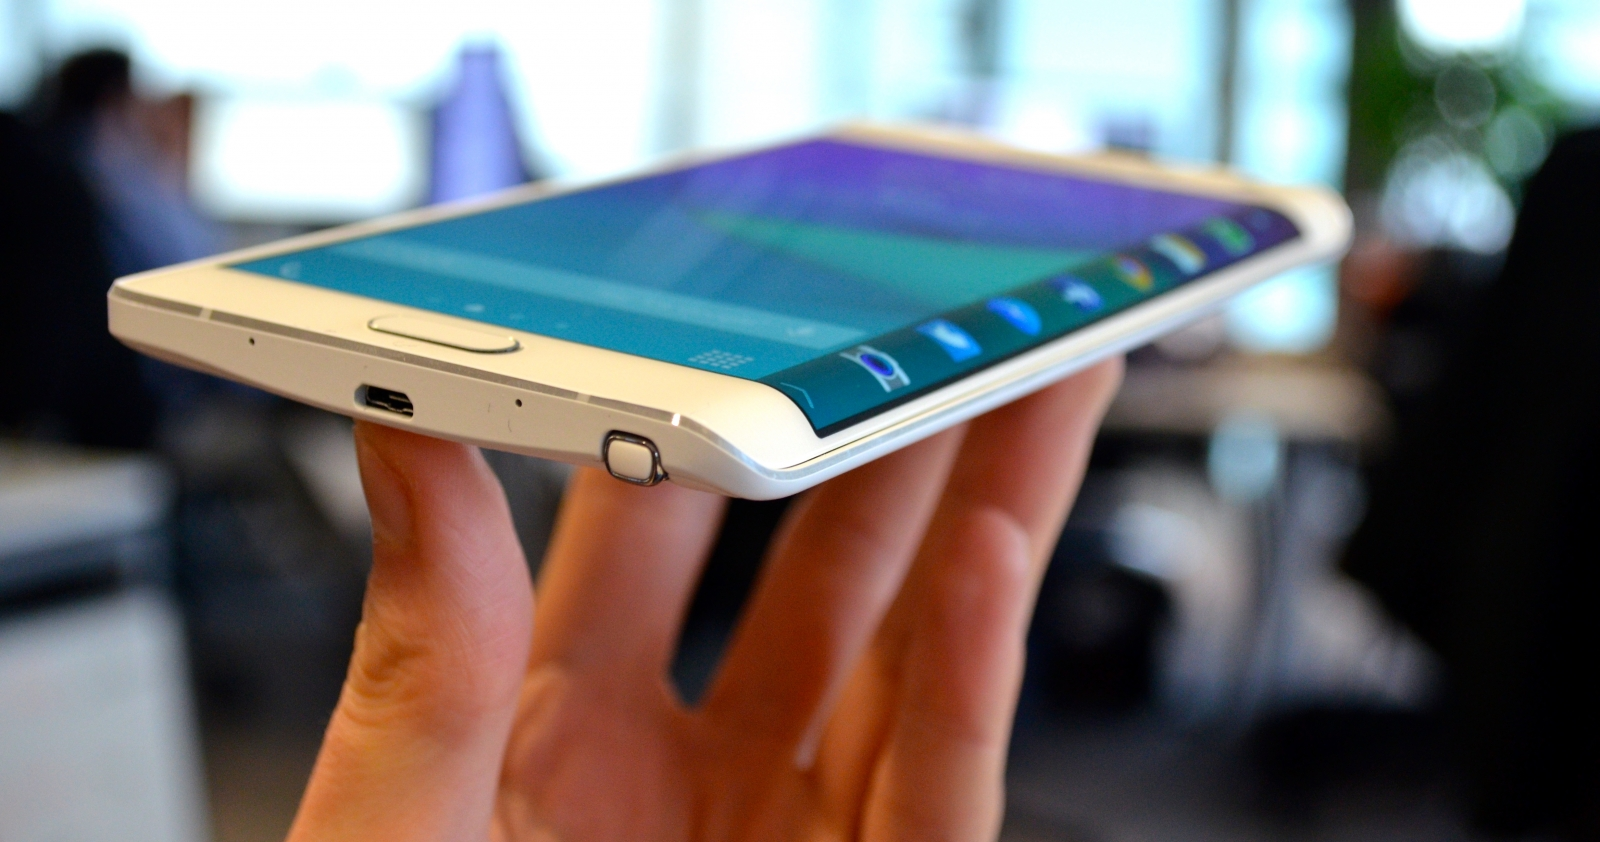 September security patch for Galaxy Note4